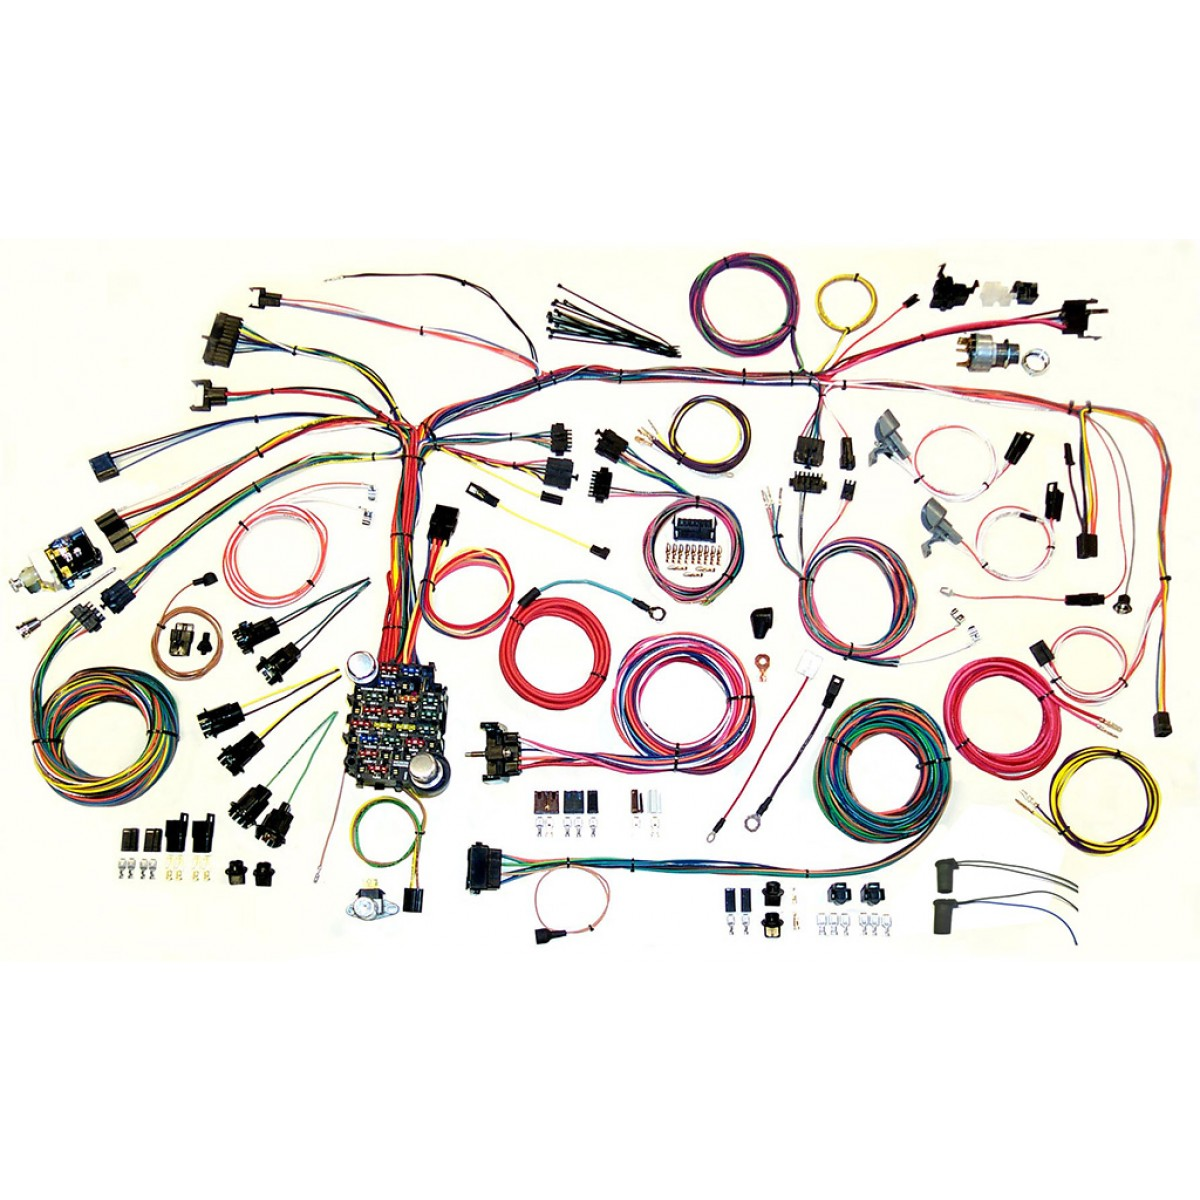 firebird wire harness complete wiring harness kit 1967 1968 firebird part 500886 1967 1968 pontiac firbird complete wiring harness kit 1967 1968 camaro complete wiring harness at n-0.co